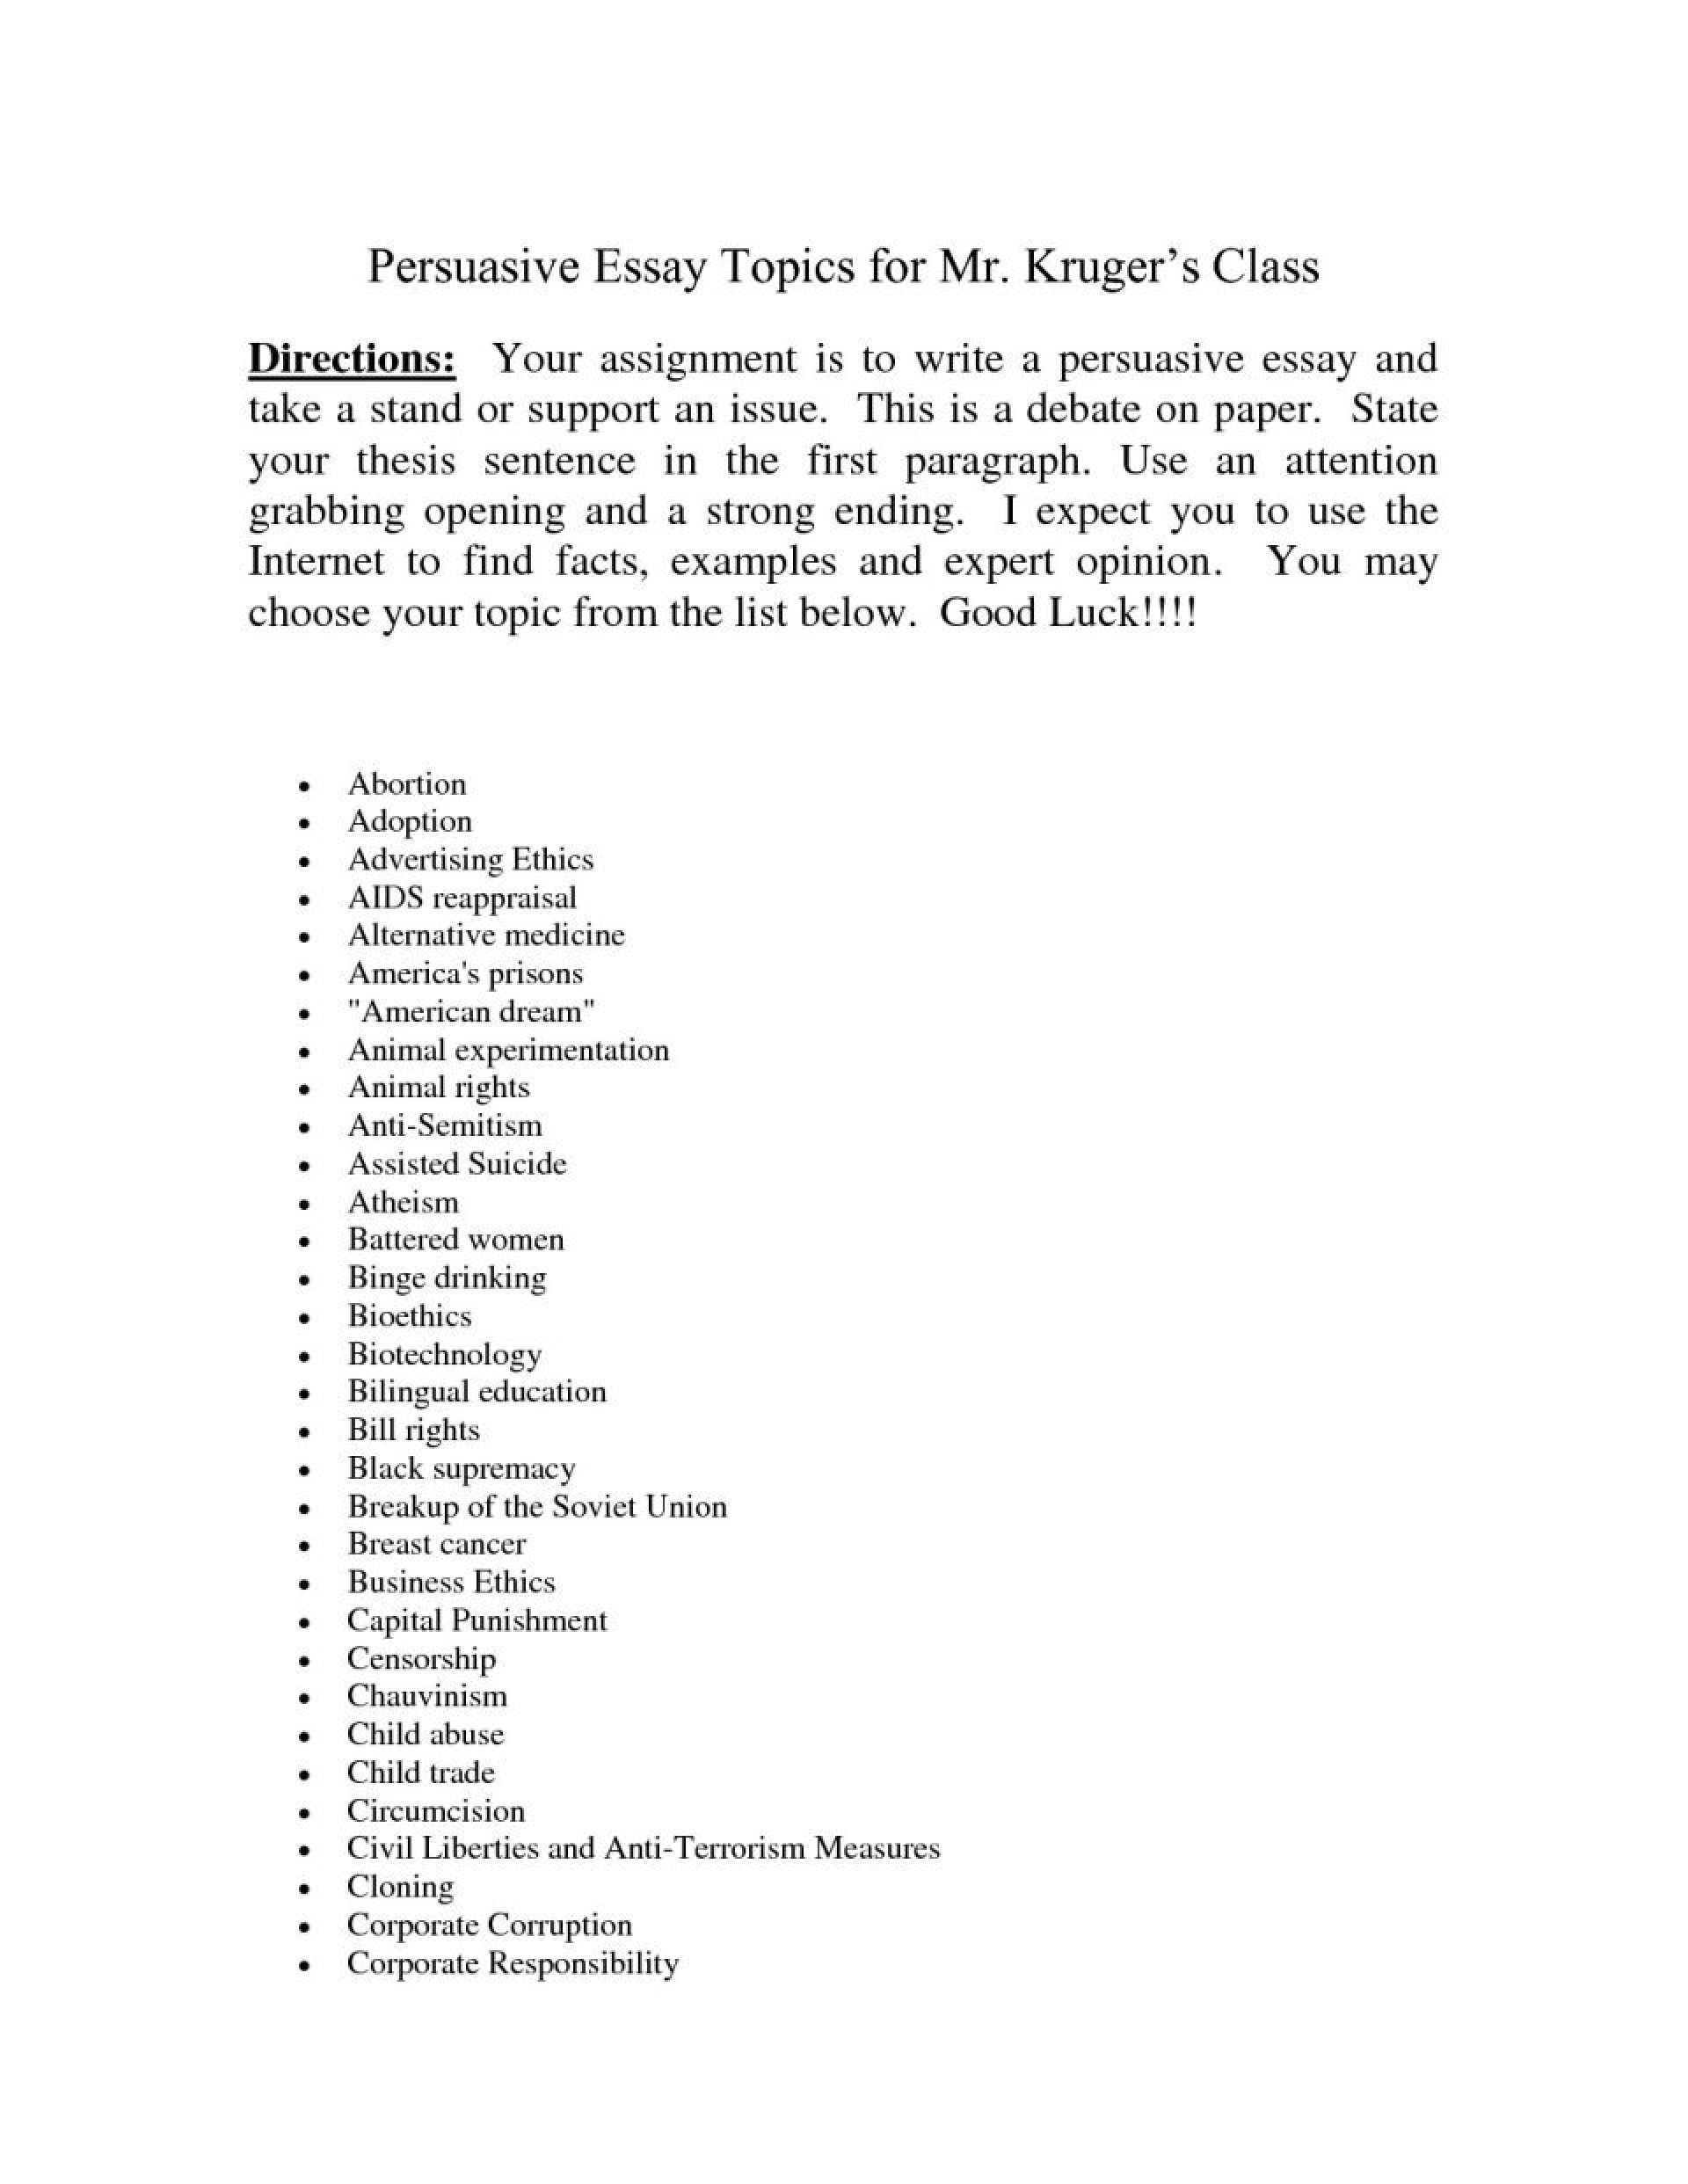 001 Topic For Essay Barca Fontanacountryinn Within Good Persuasive Narrative Topics To Write Abo Easy About Personal Descriptive Research Paper Informative Synthesis College Fantastic Computer Science 1920